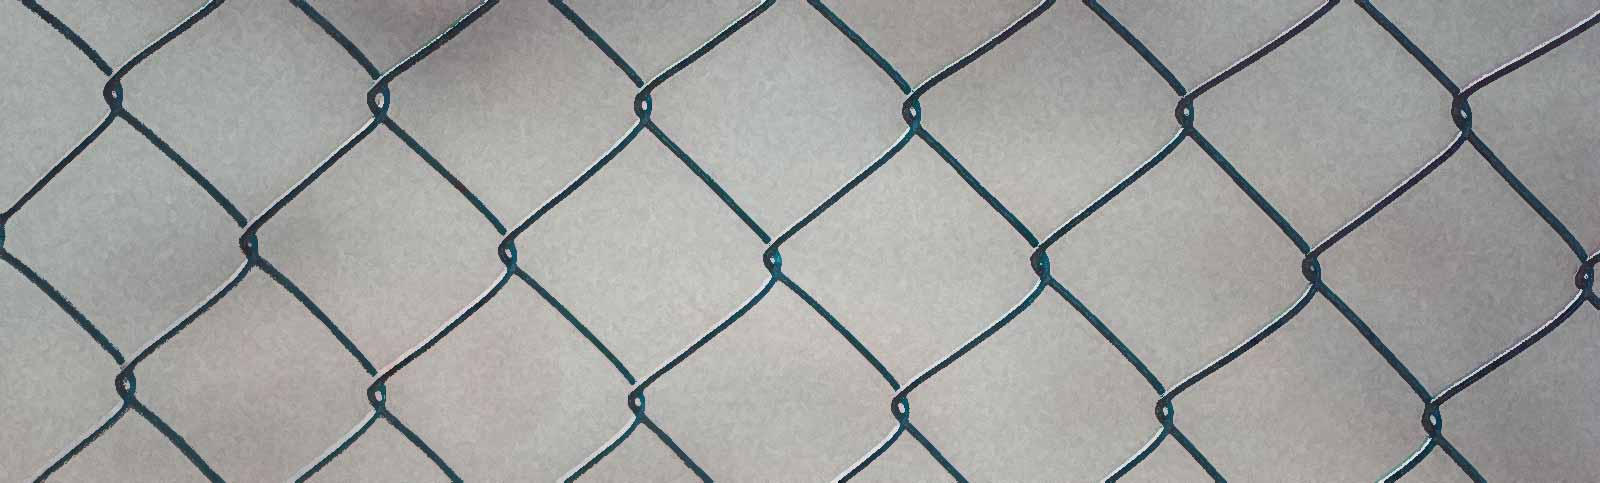 On High Fencing and Security to Keep Trespassers Out